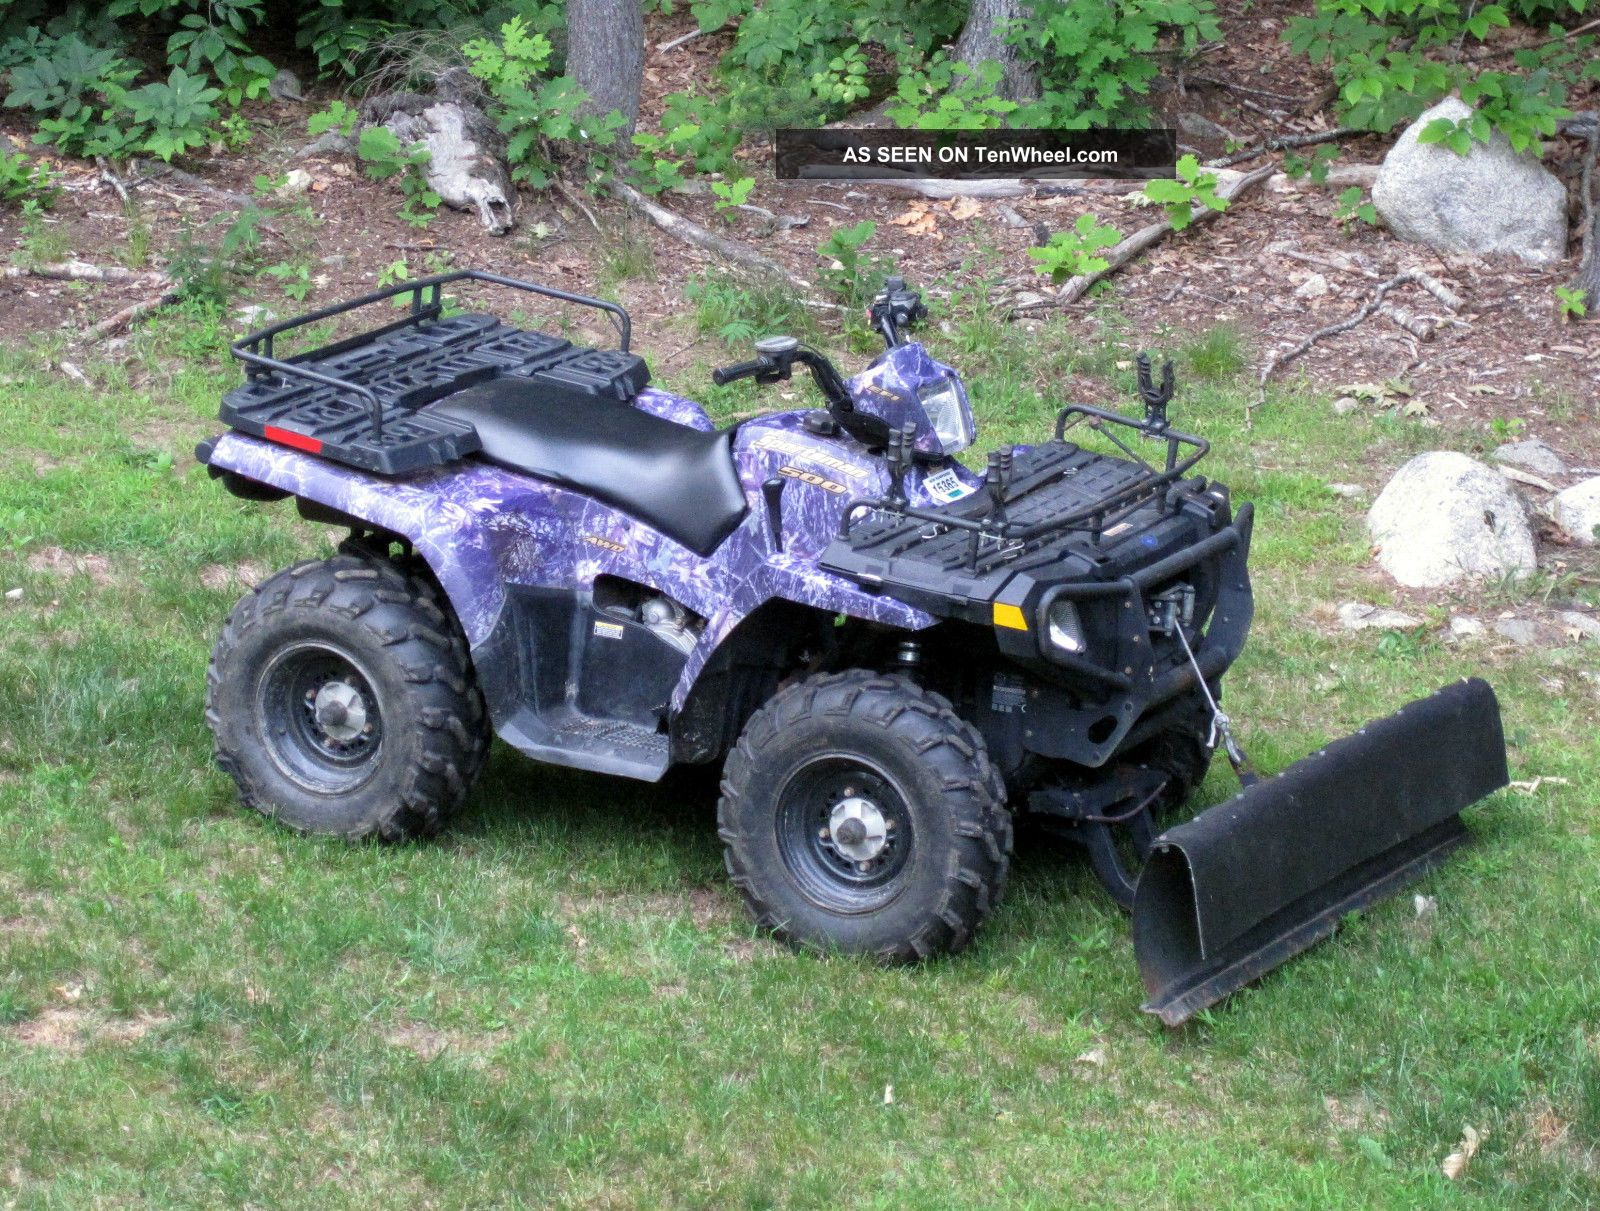 2006 polaris sportsman 500 ho efi atv specs reviews html. Black Bedroom Furniture Sets. Home Design Ideas